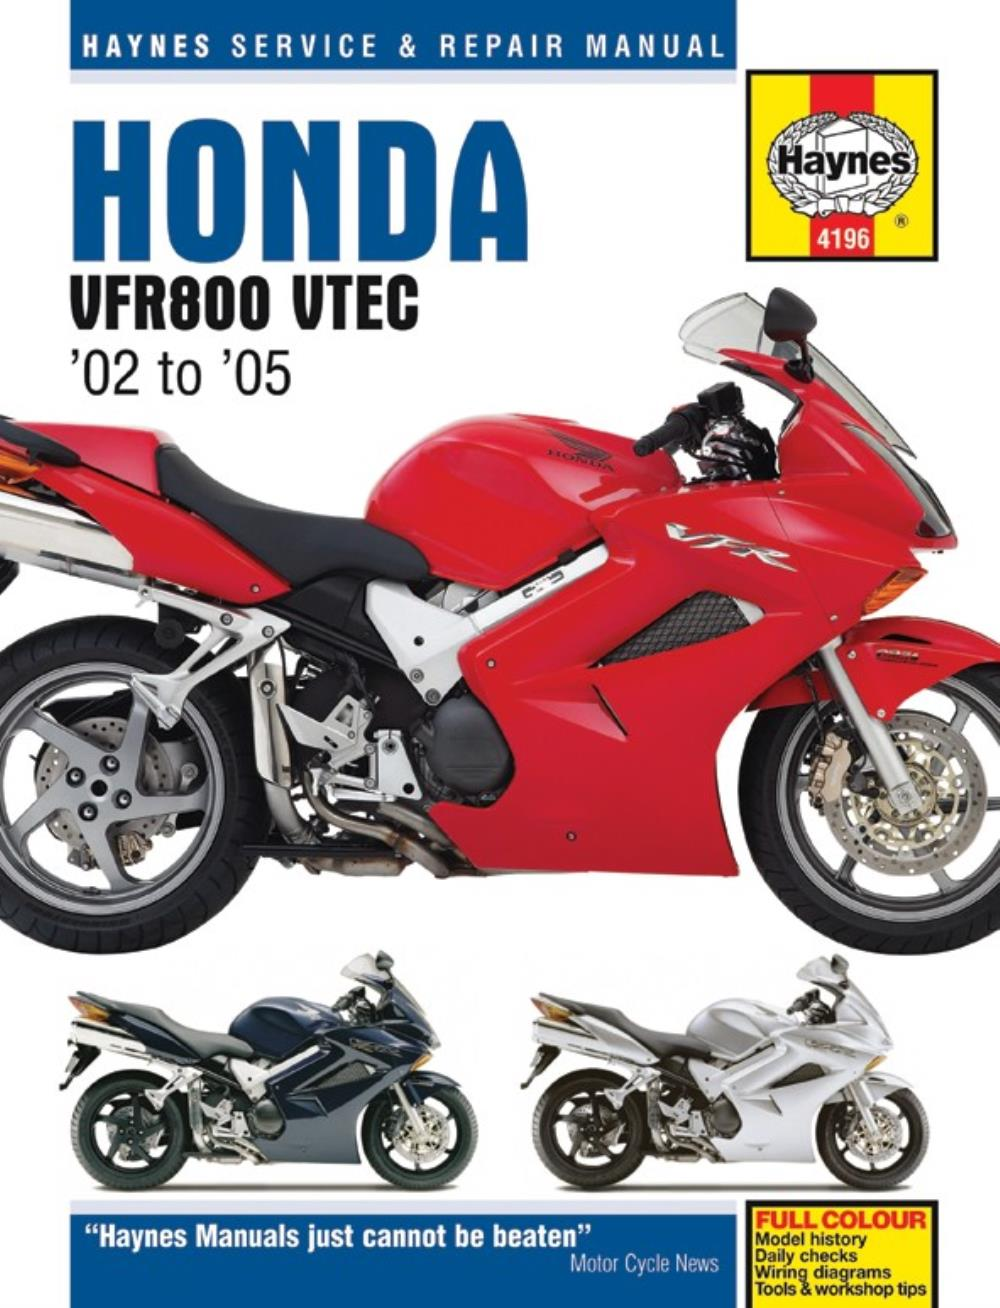 Manual Haynes for 2009 Honda VFR 800 A9 VTEC (ABS) (RC46) | eBay on 2009 honda rancher wiring diagram, 2009 honda shadow wiring diagram, 2009 honda big red accessories, 2009 honda goldwing wiring diagram, 2009 honda big red parts, 2009 honda rubicon wiring diagram,